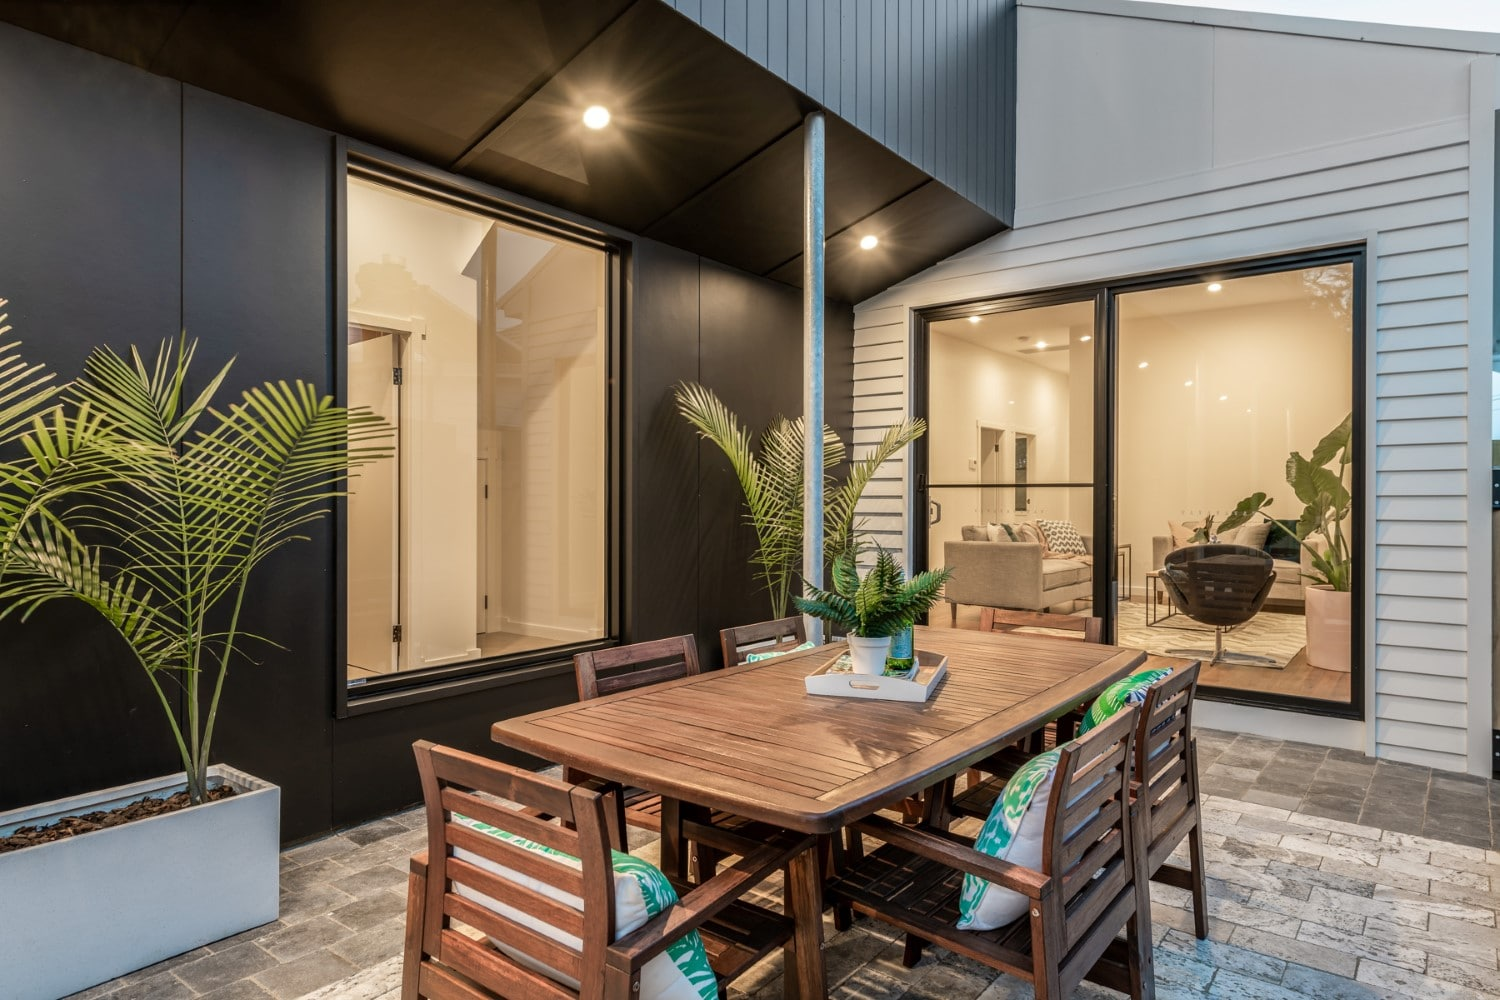 Renovated Family Home | New Lambton - https://www.peonyandsilk.com.au/wp-content/uploads/2019/02/Peony-and-Silk-Renovated-Family-Home-New-Lambton-10.jpg